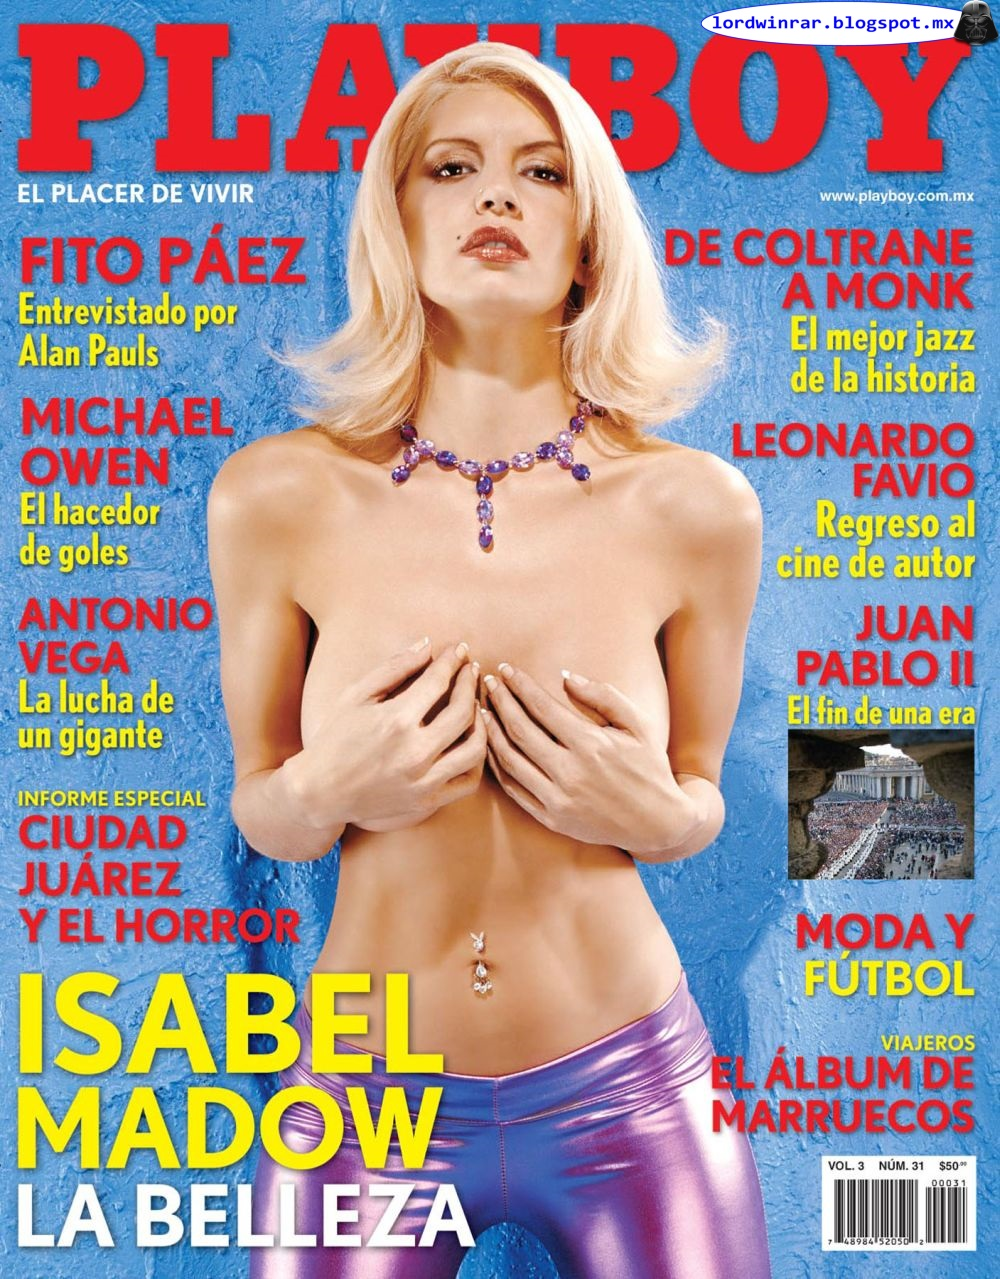 Isabel Madow Nude Pics Cheap isabel madow - playboy mexico 2005 mayo (18 fotos hq) | blog de